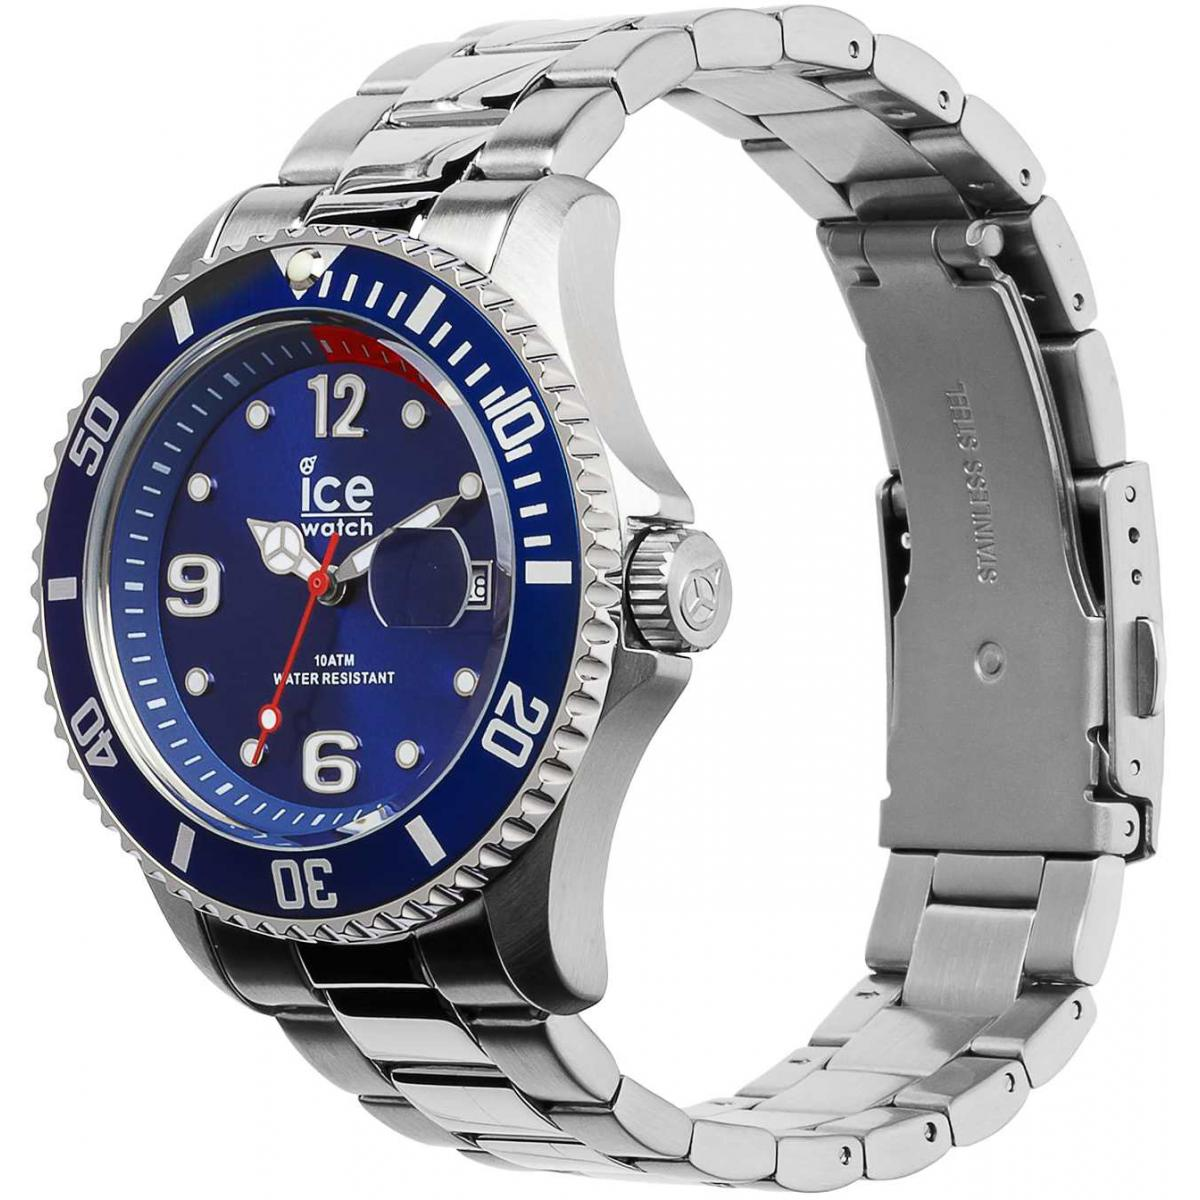 Montre Femme Ice Watch Bleu 015771